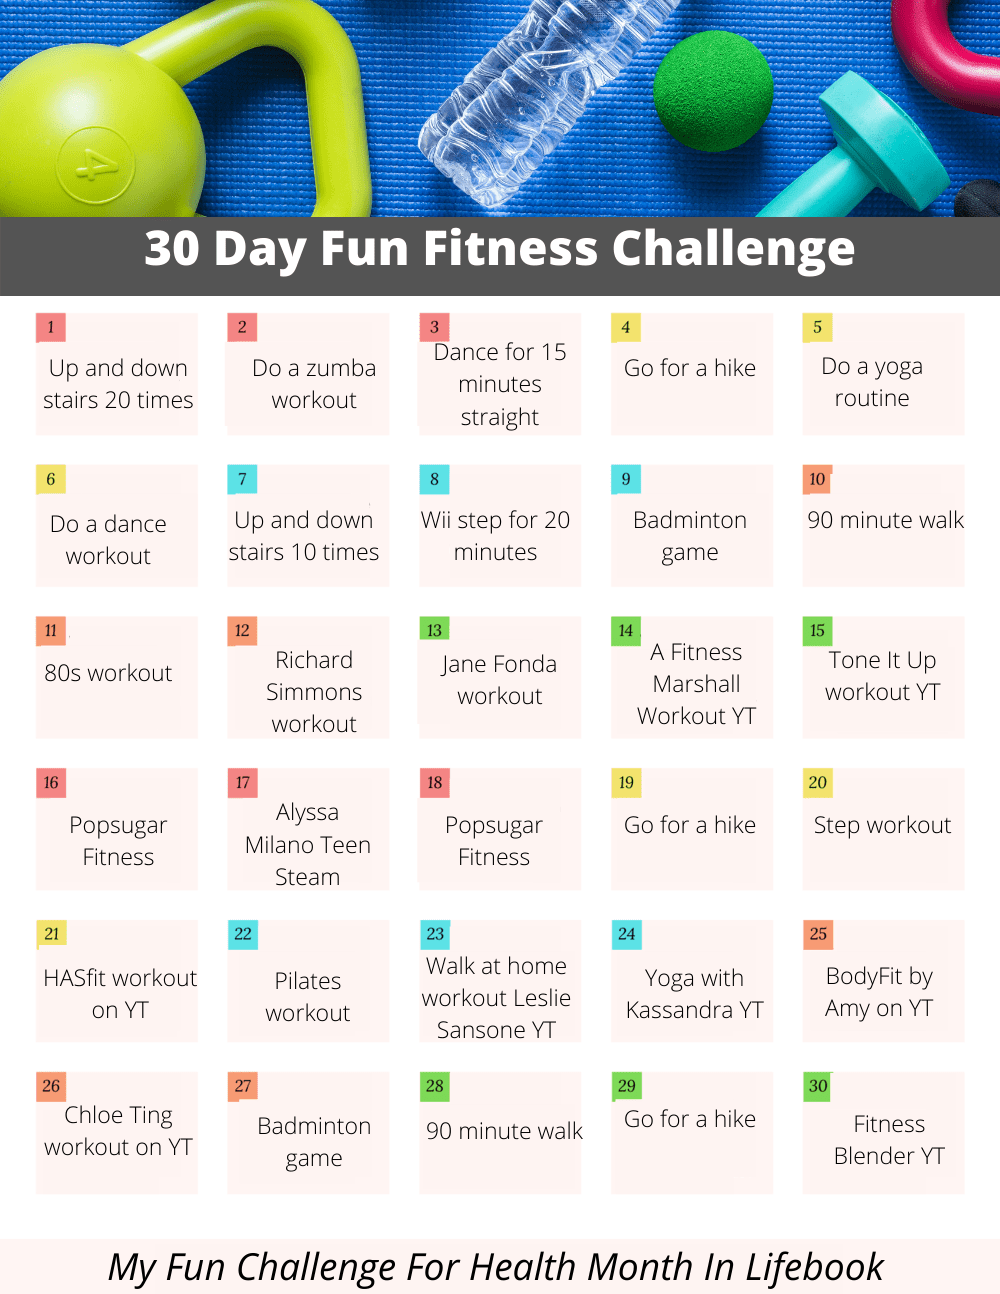 My 30-Day Fun Fitness Challenge For Health Month